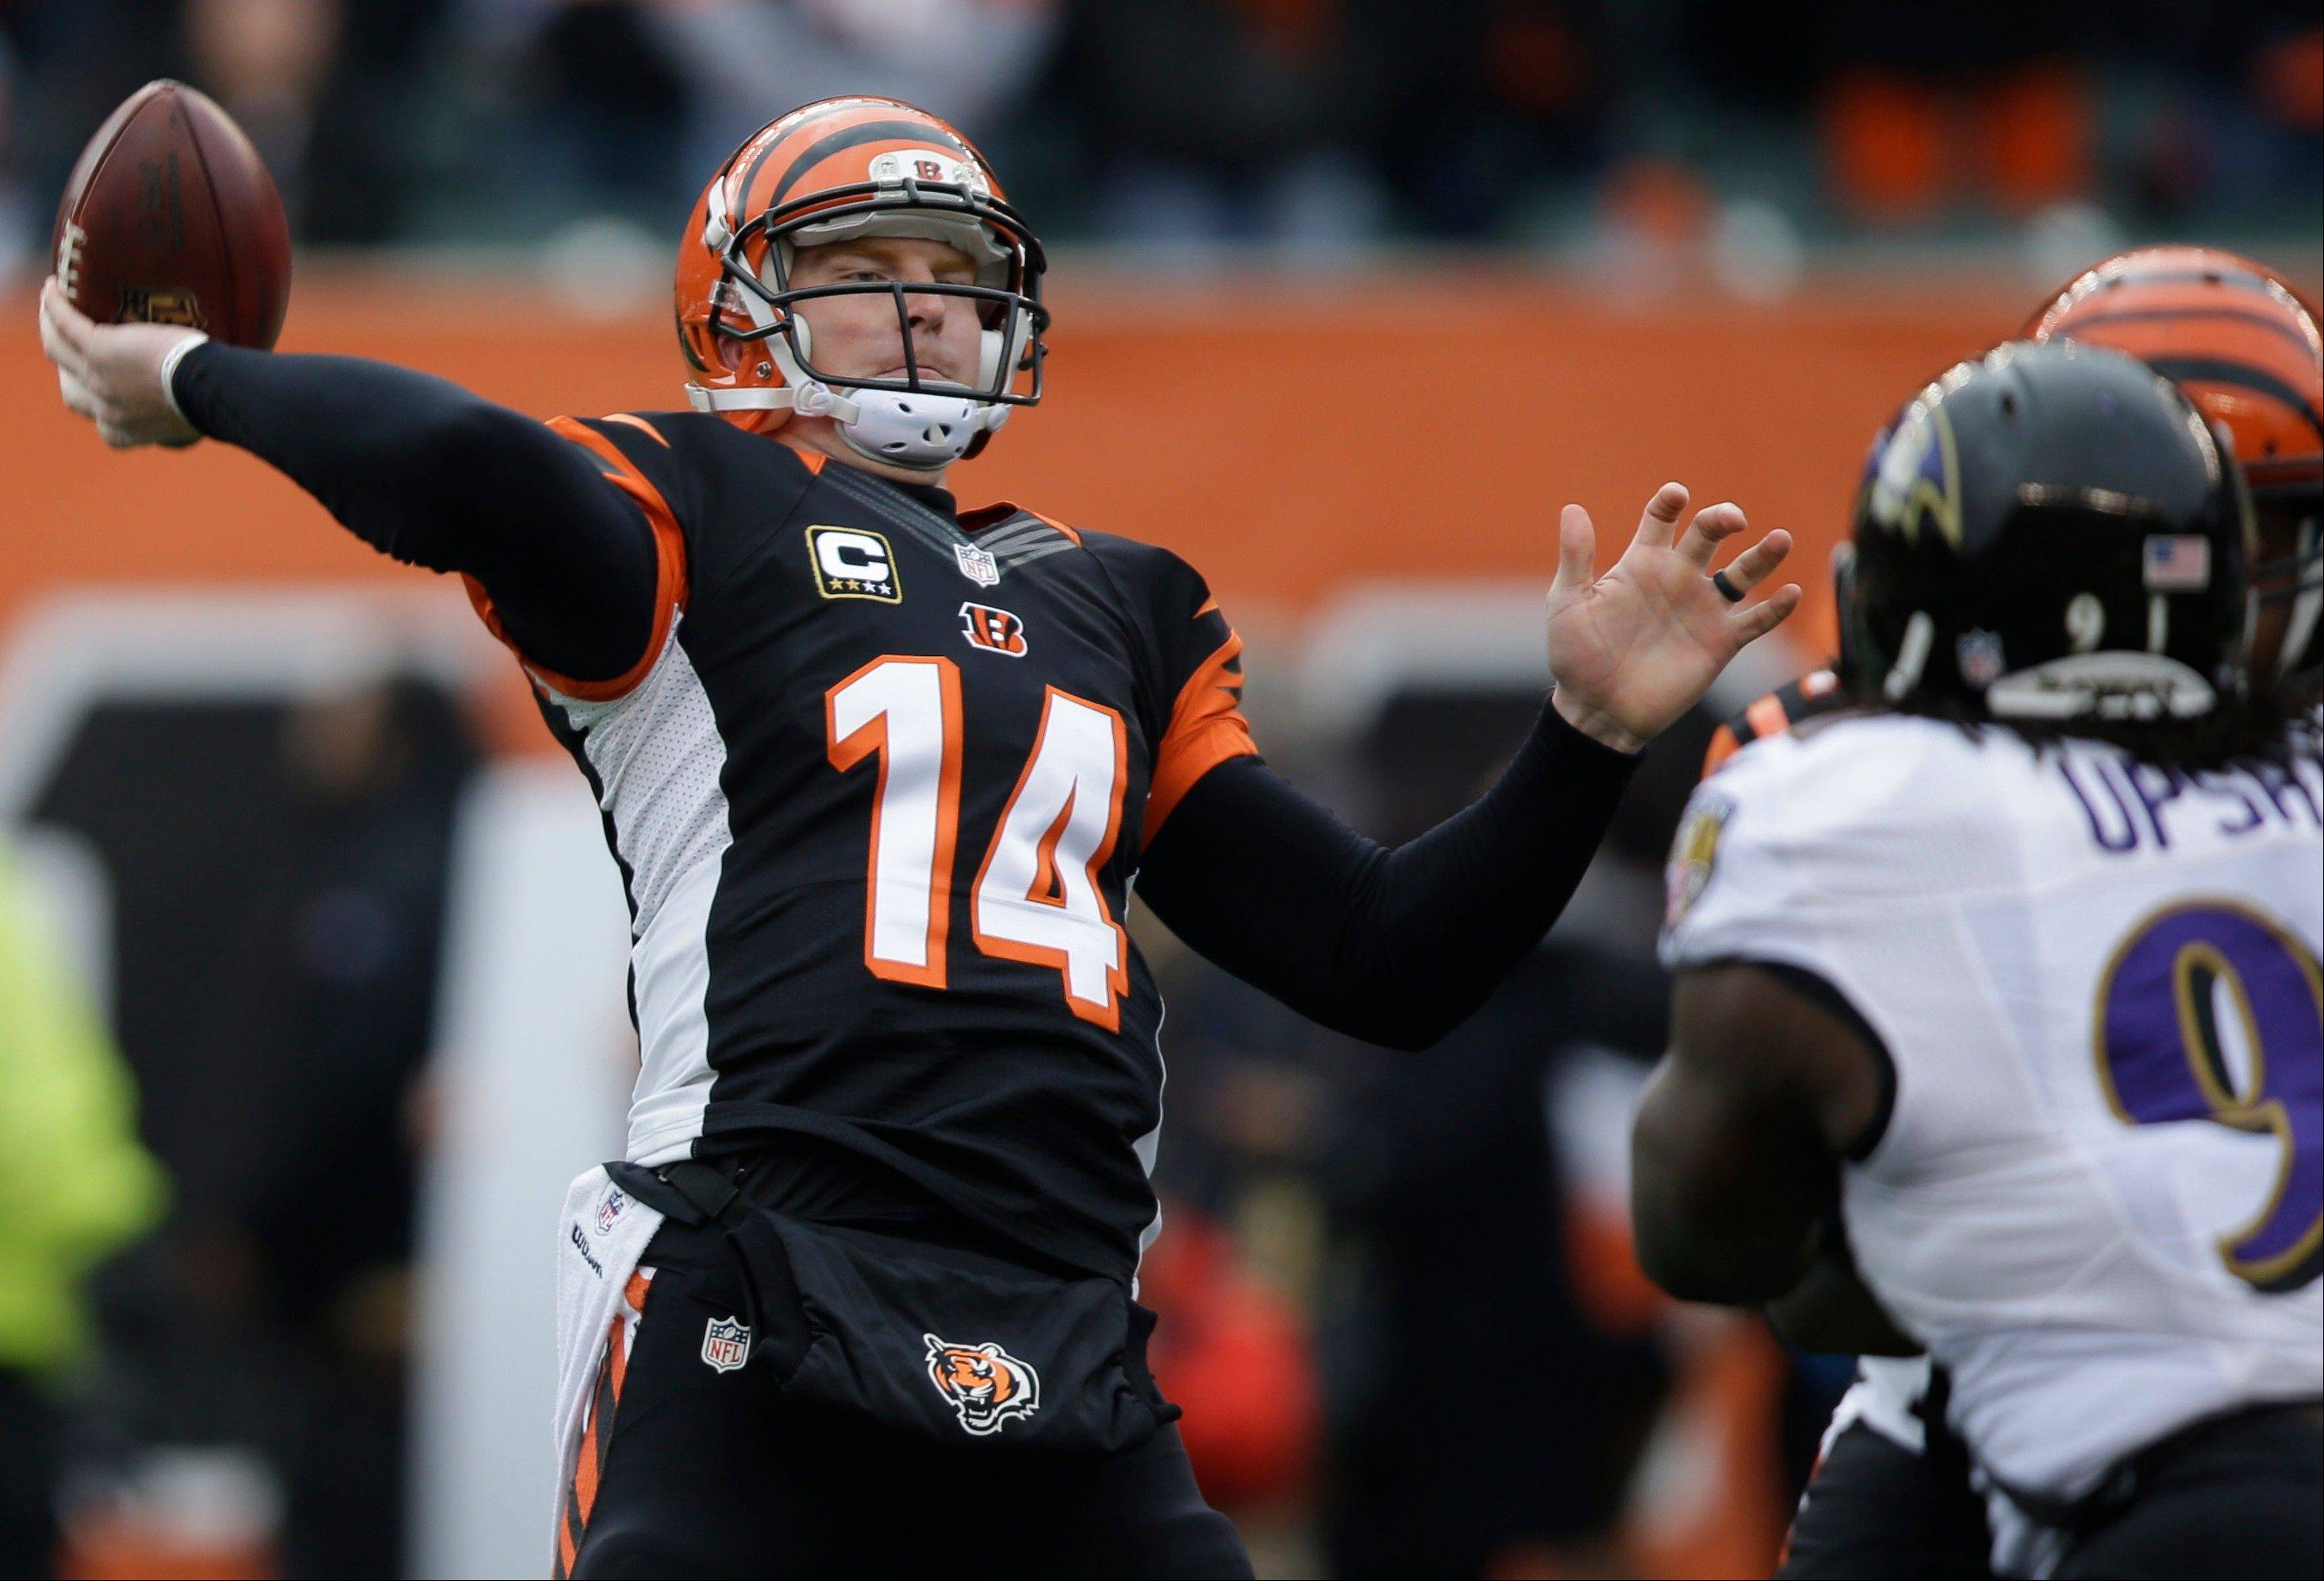 Cincinnati quarterback Andy Dalton throws a pass against the Baltimore Ravens in the first half of last week's game. The Bengals finished in the top 10 in offense and defense this season for the first time since 1989.